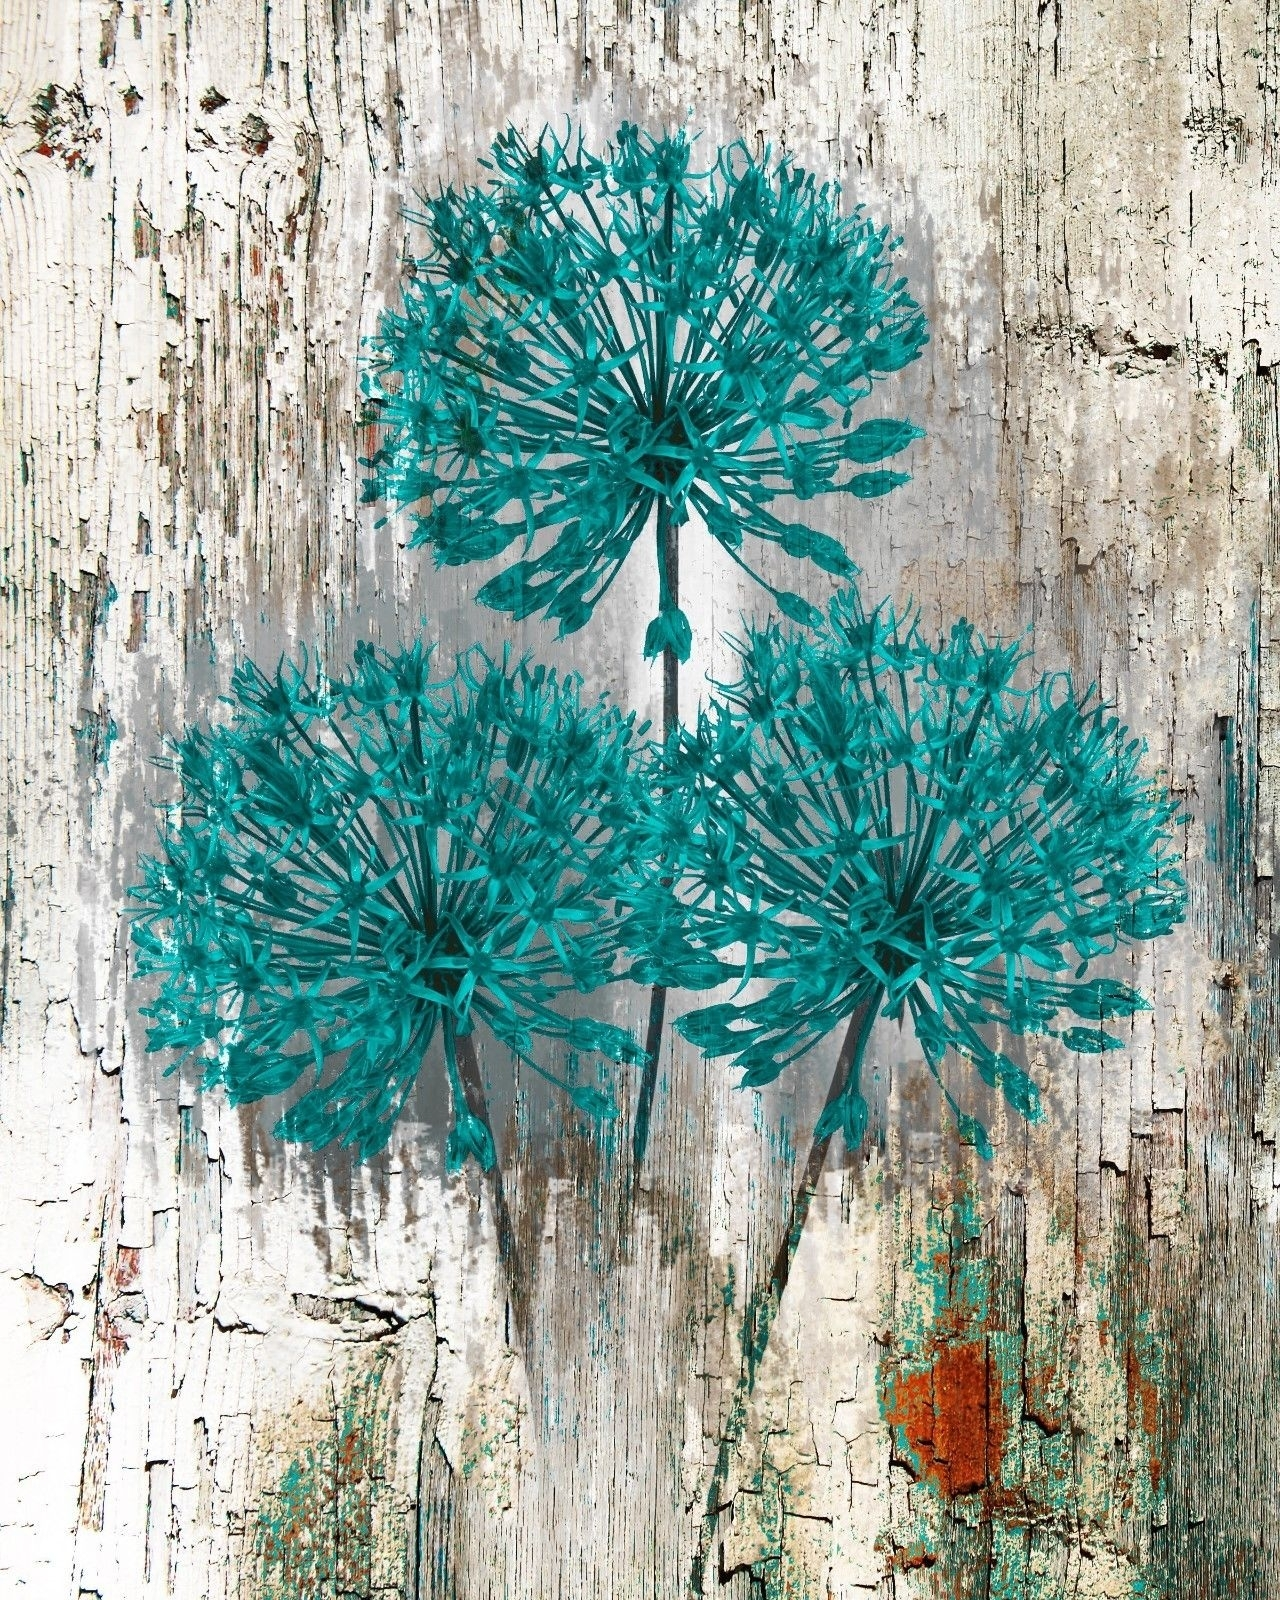 Teal Brown Rustic Distressed Flower Wall Art Home Decor Matted throughout Teal Wall Art (Image 15 of 20)